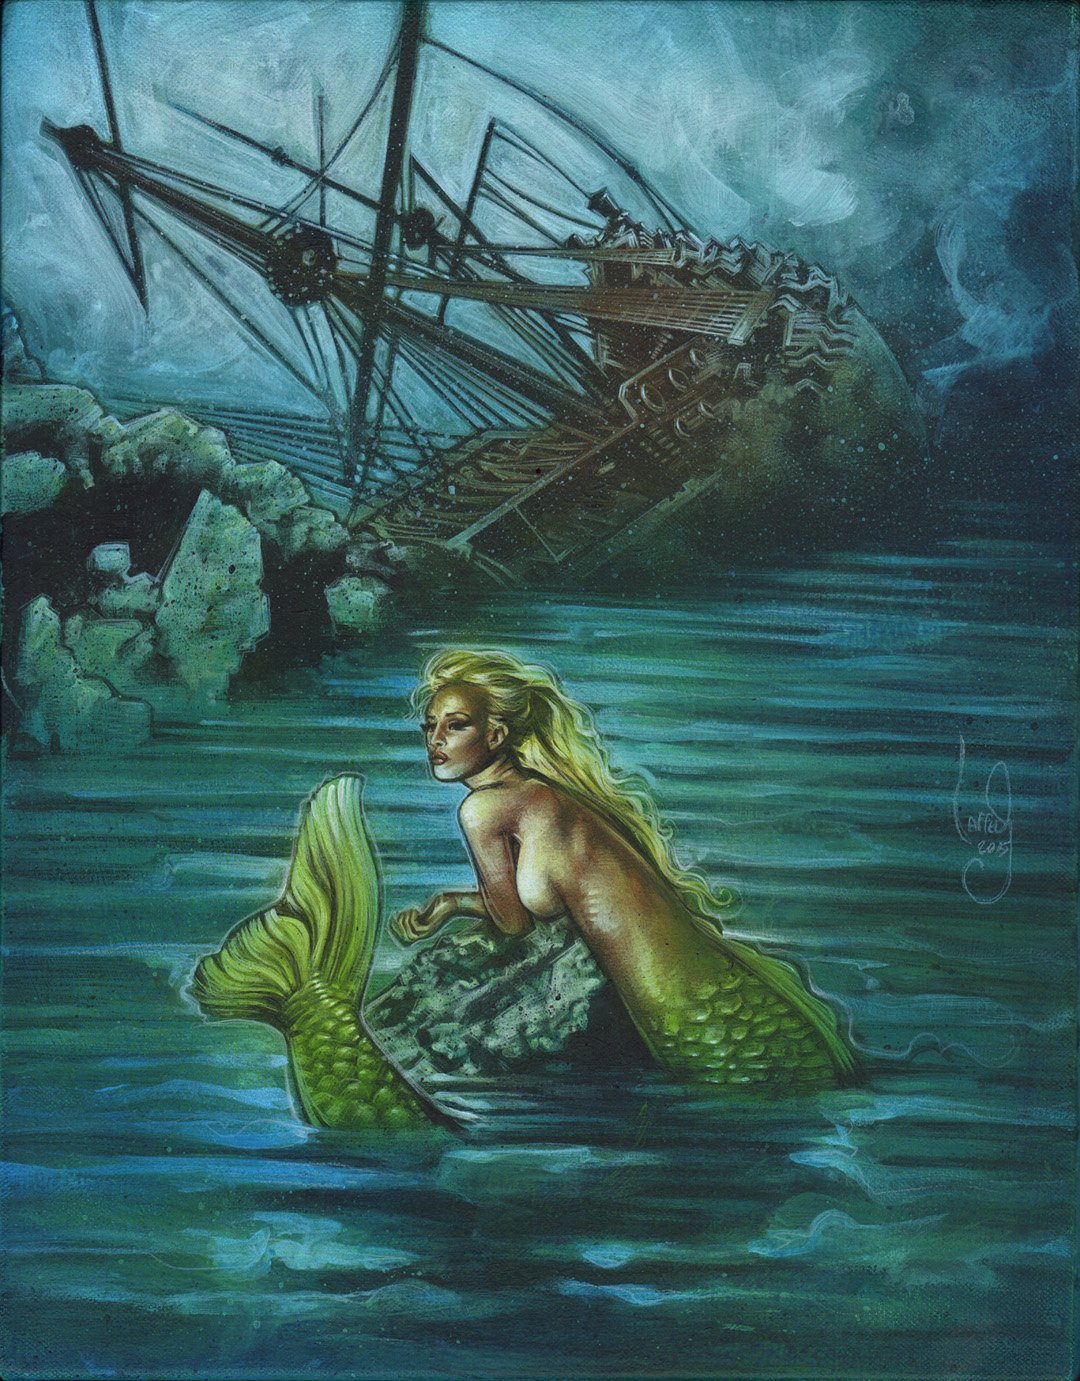 Mermaid and Shipwreck, Artwork is Copyright © 2015 Jeff Lafferty